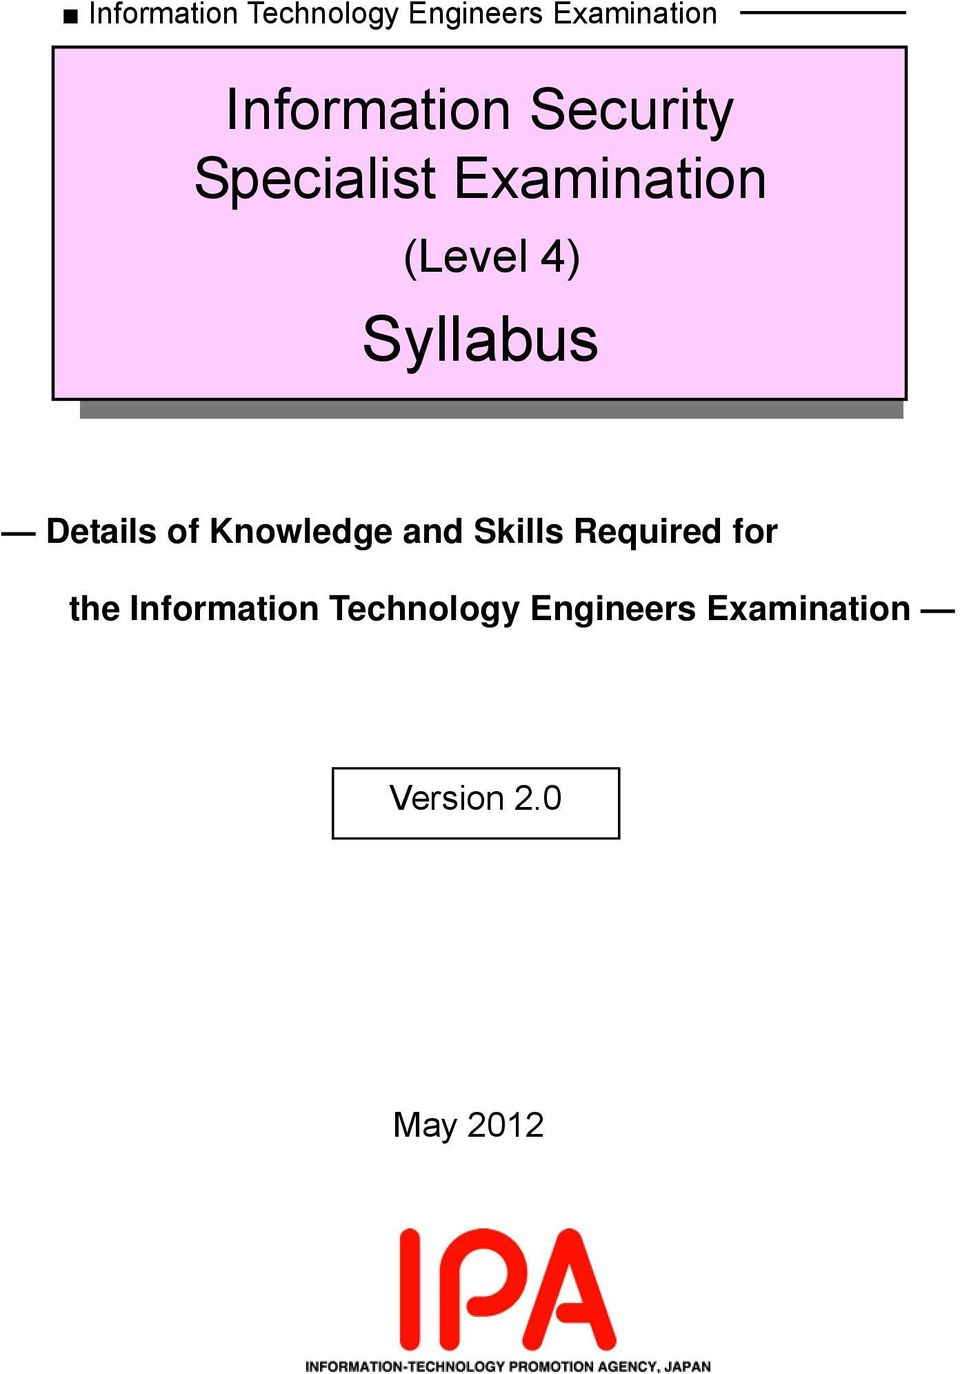 Syllabus Details of Knowledge and Skills Required for